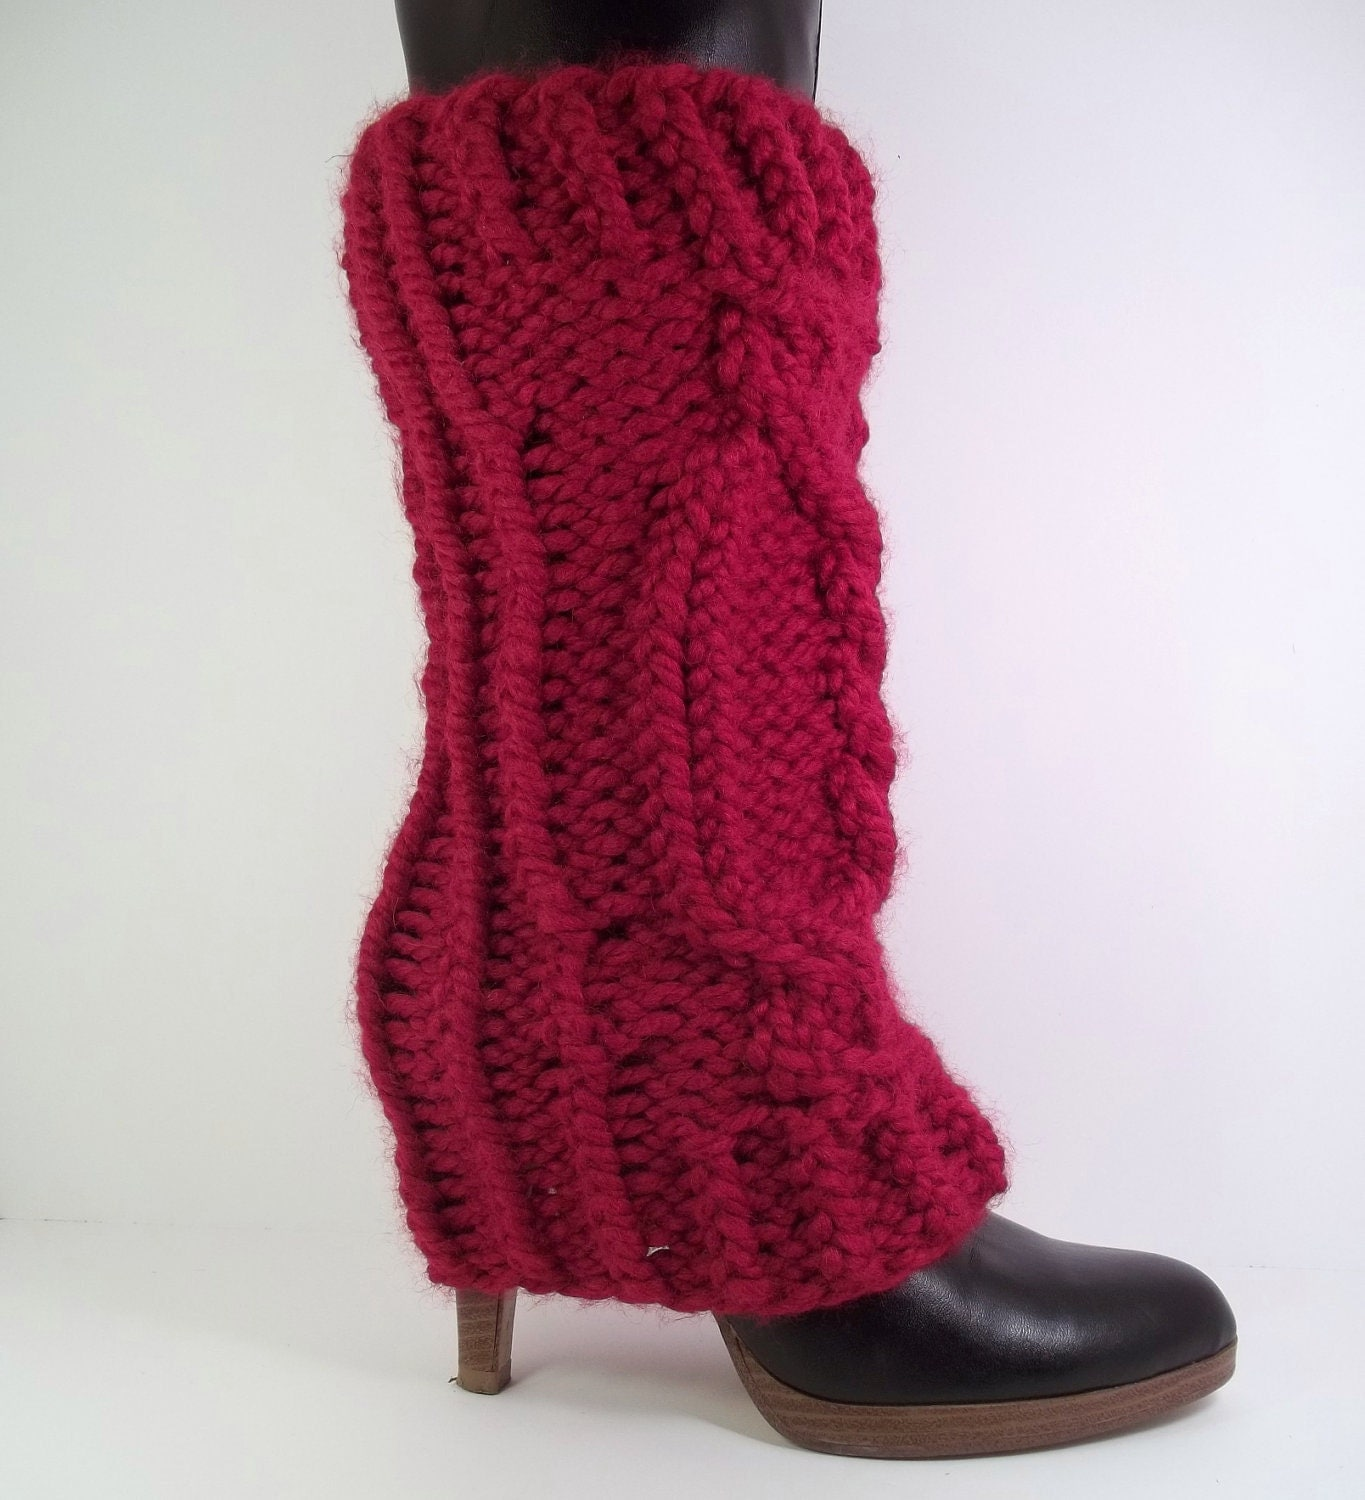 Ribbed Leg Warmers | FaveCrafts.com - Christma